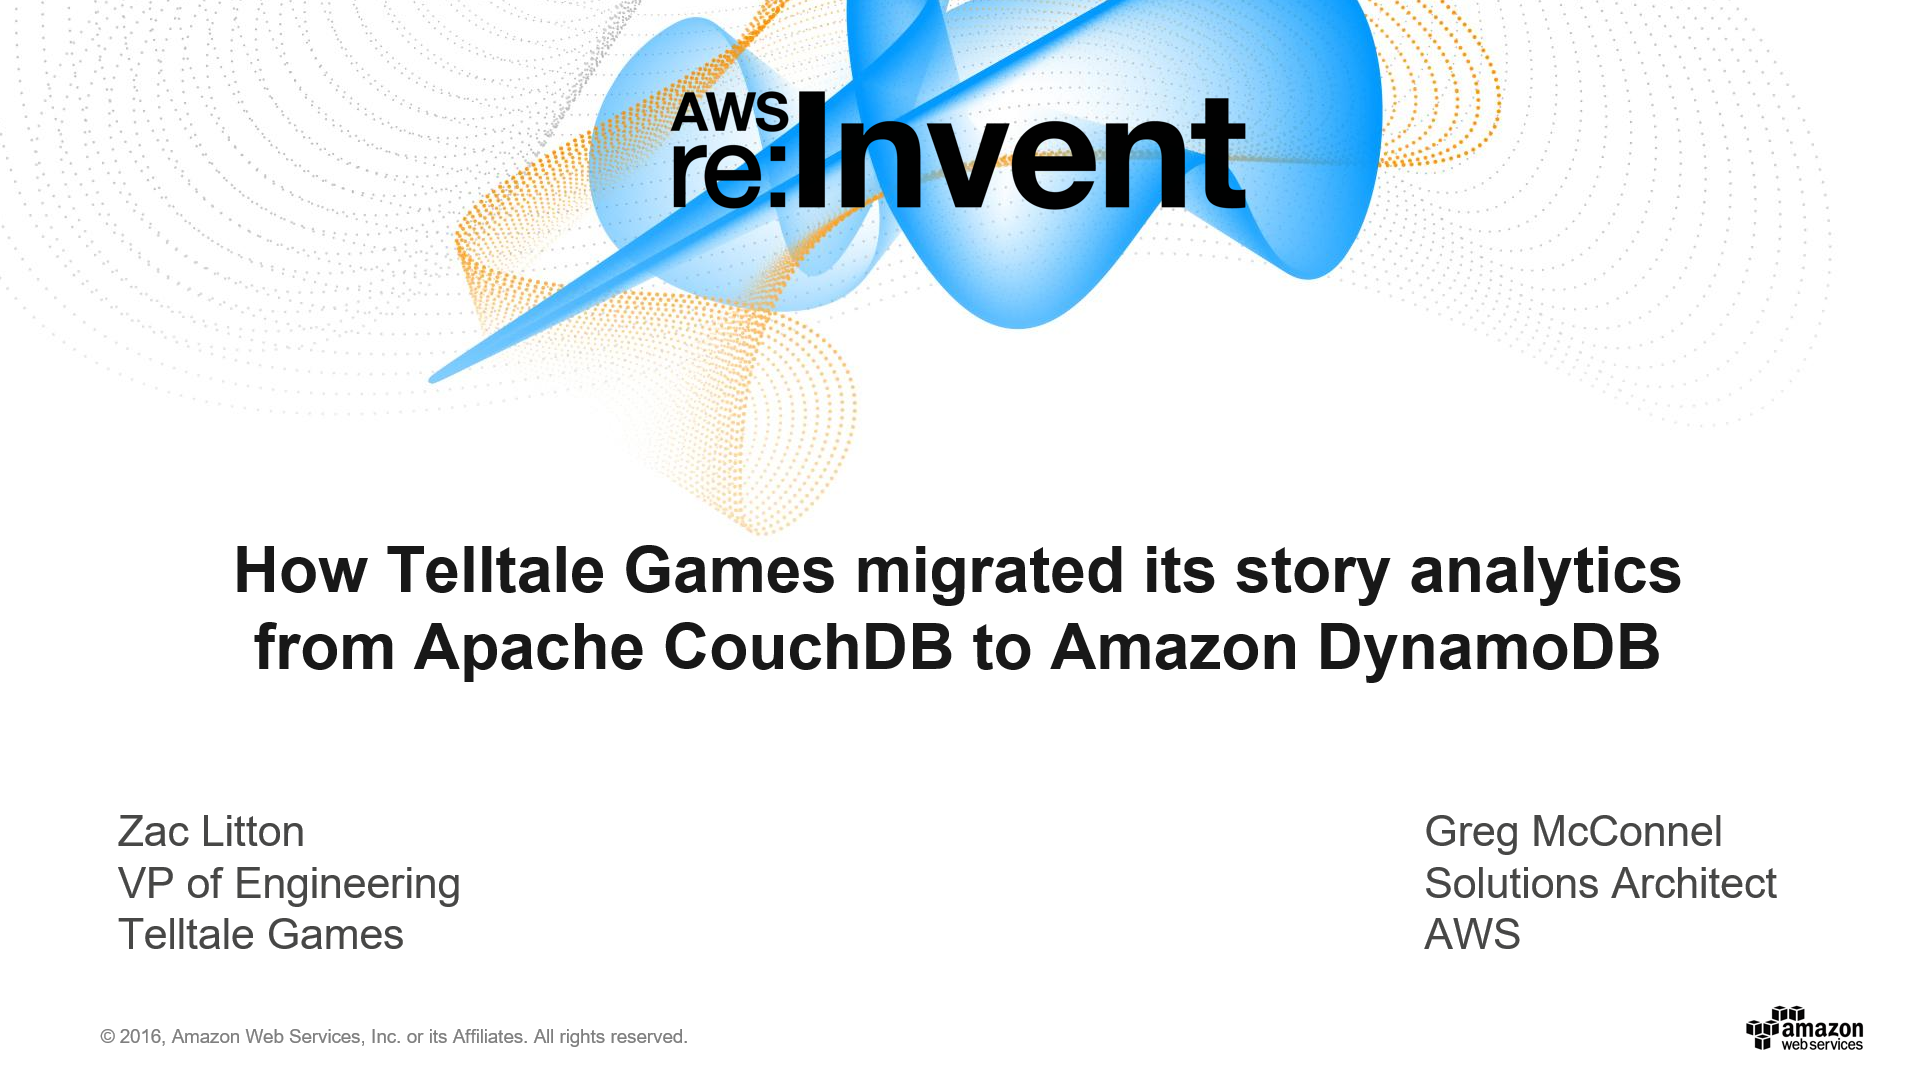 DAT316 How Telltale Games migrated its story analytics from Apache CouchDB to Amazon DynamoDB